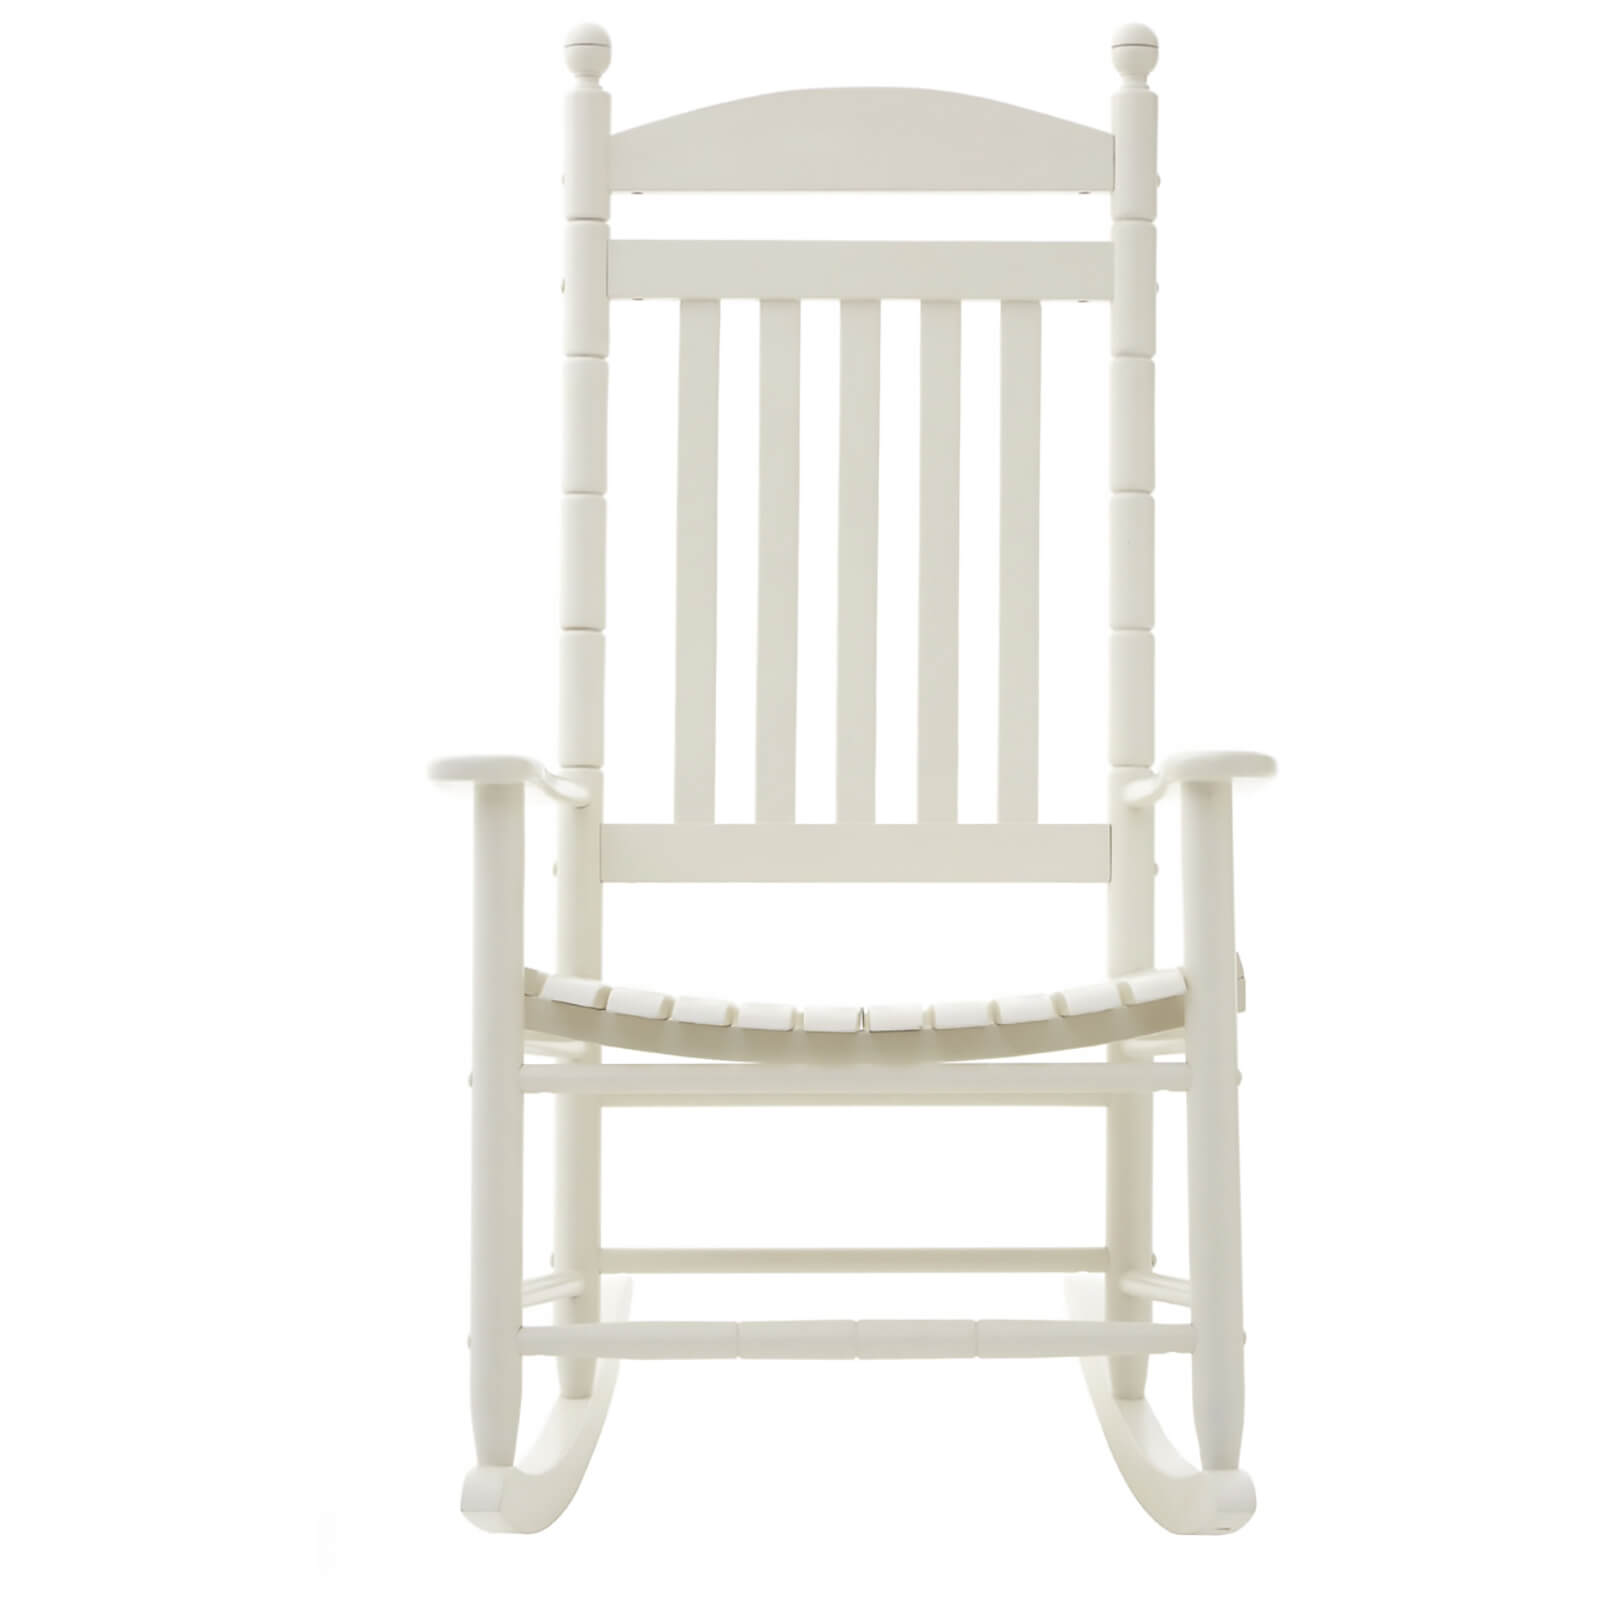 Fifty Five South Vermont Rocker Chair -White